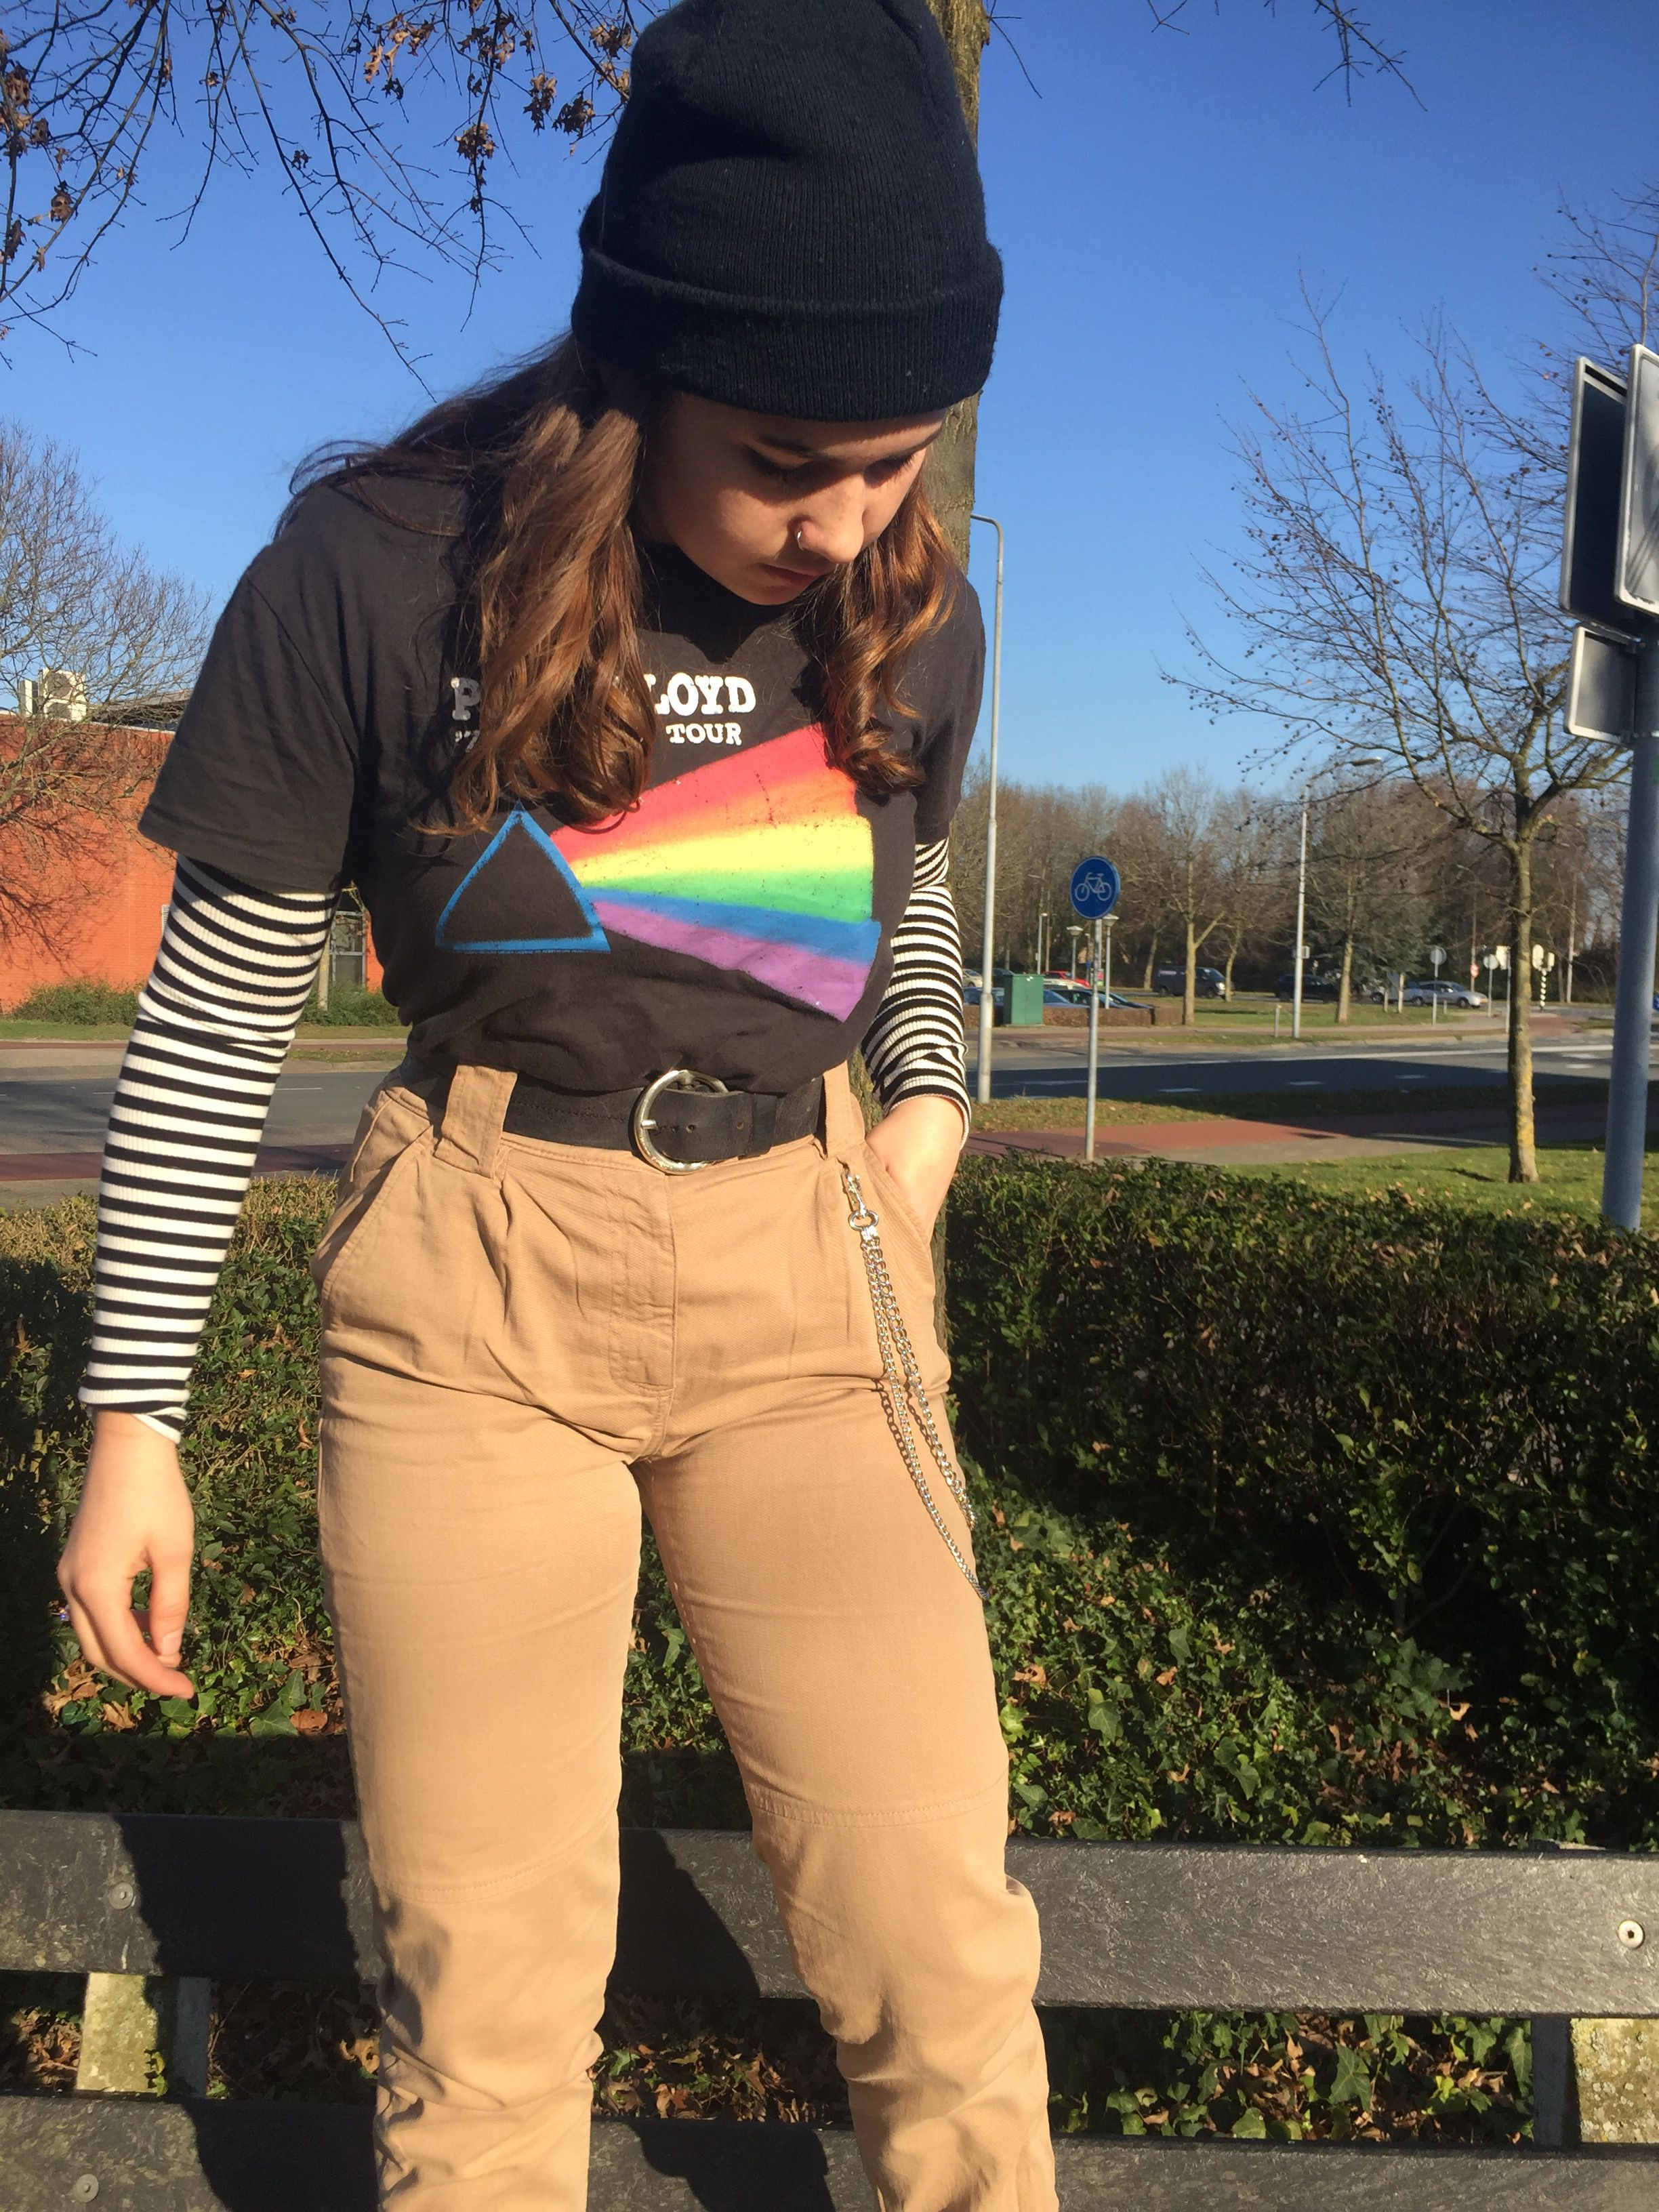 Aesthetic Outfit Egirloutfitsideas Aesthetic Outfit Grunge Beanie Hip Hop Egirl Chains Brown Rainbow Aesthetic Clothes Retro Outfits Aesthetic Grunge Outfit